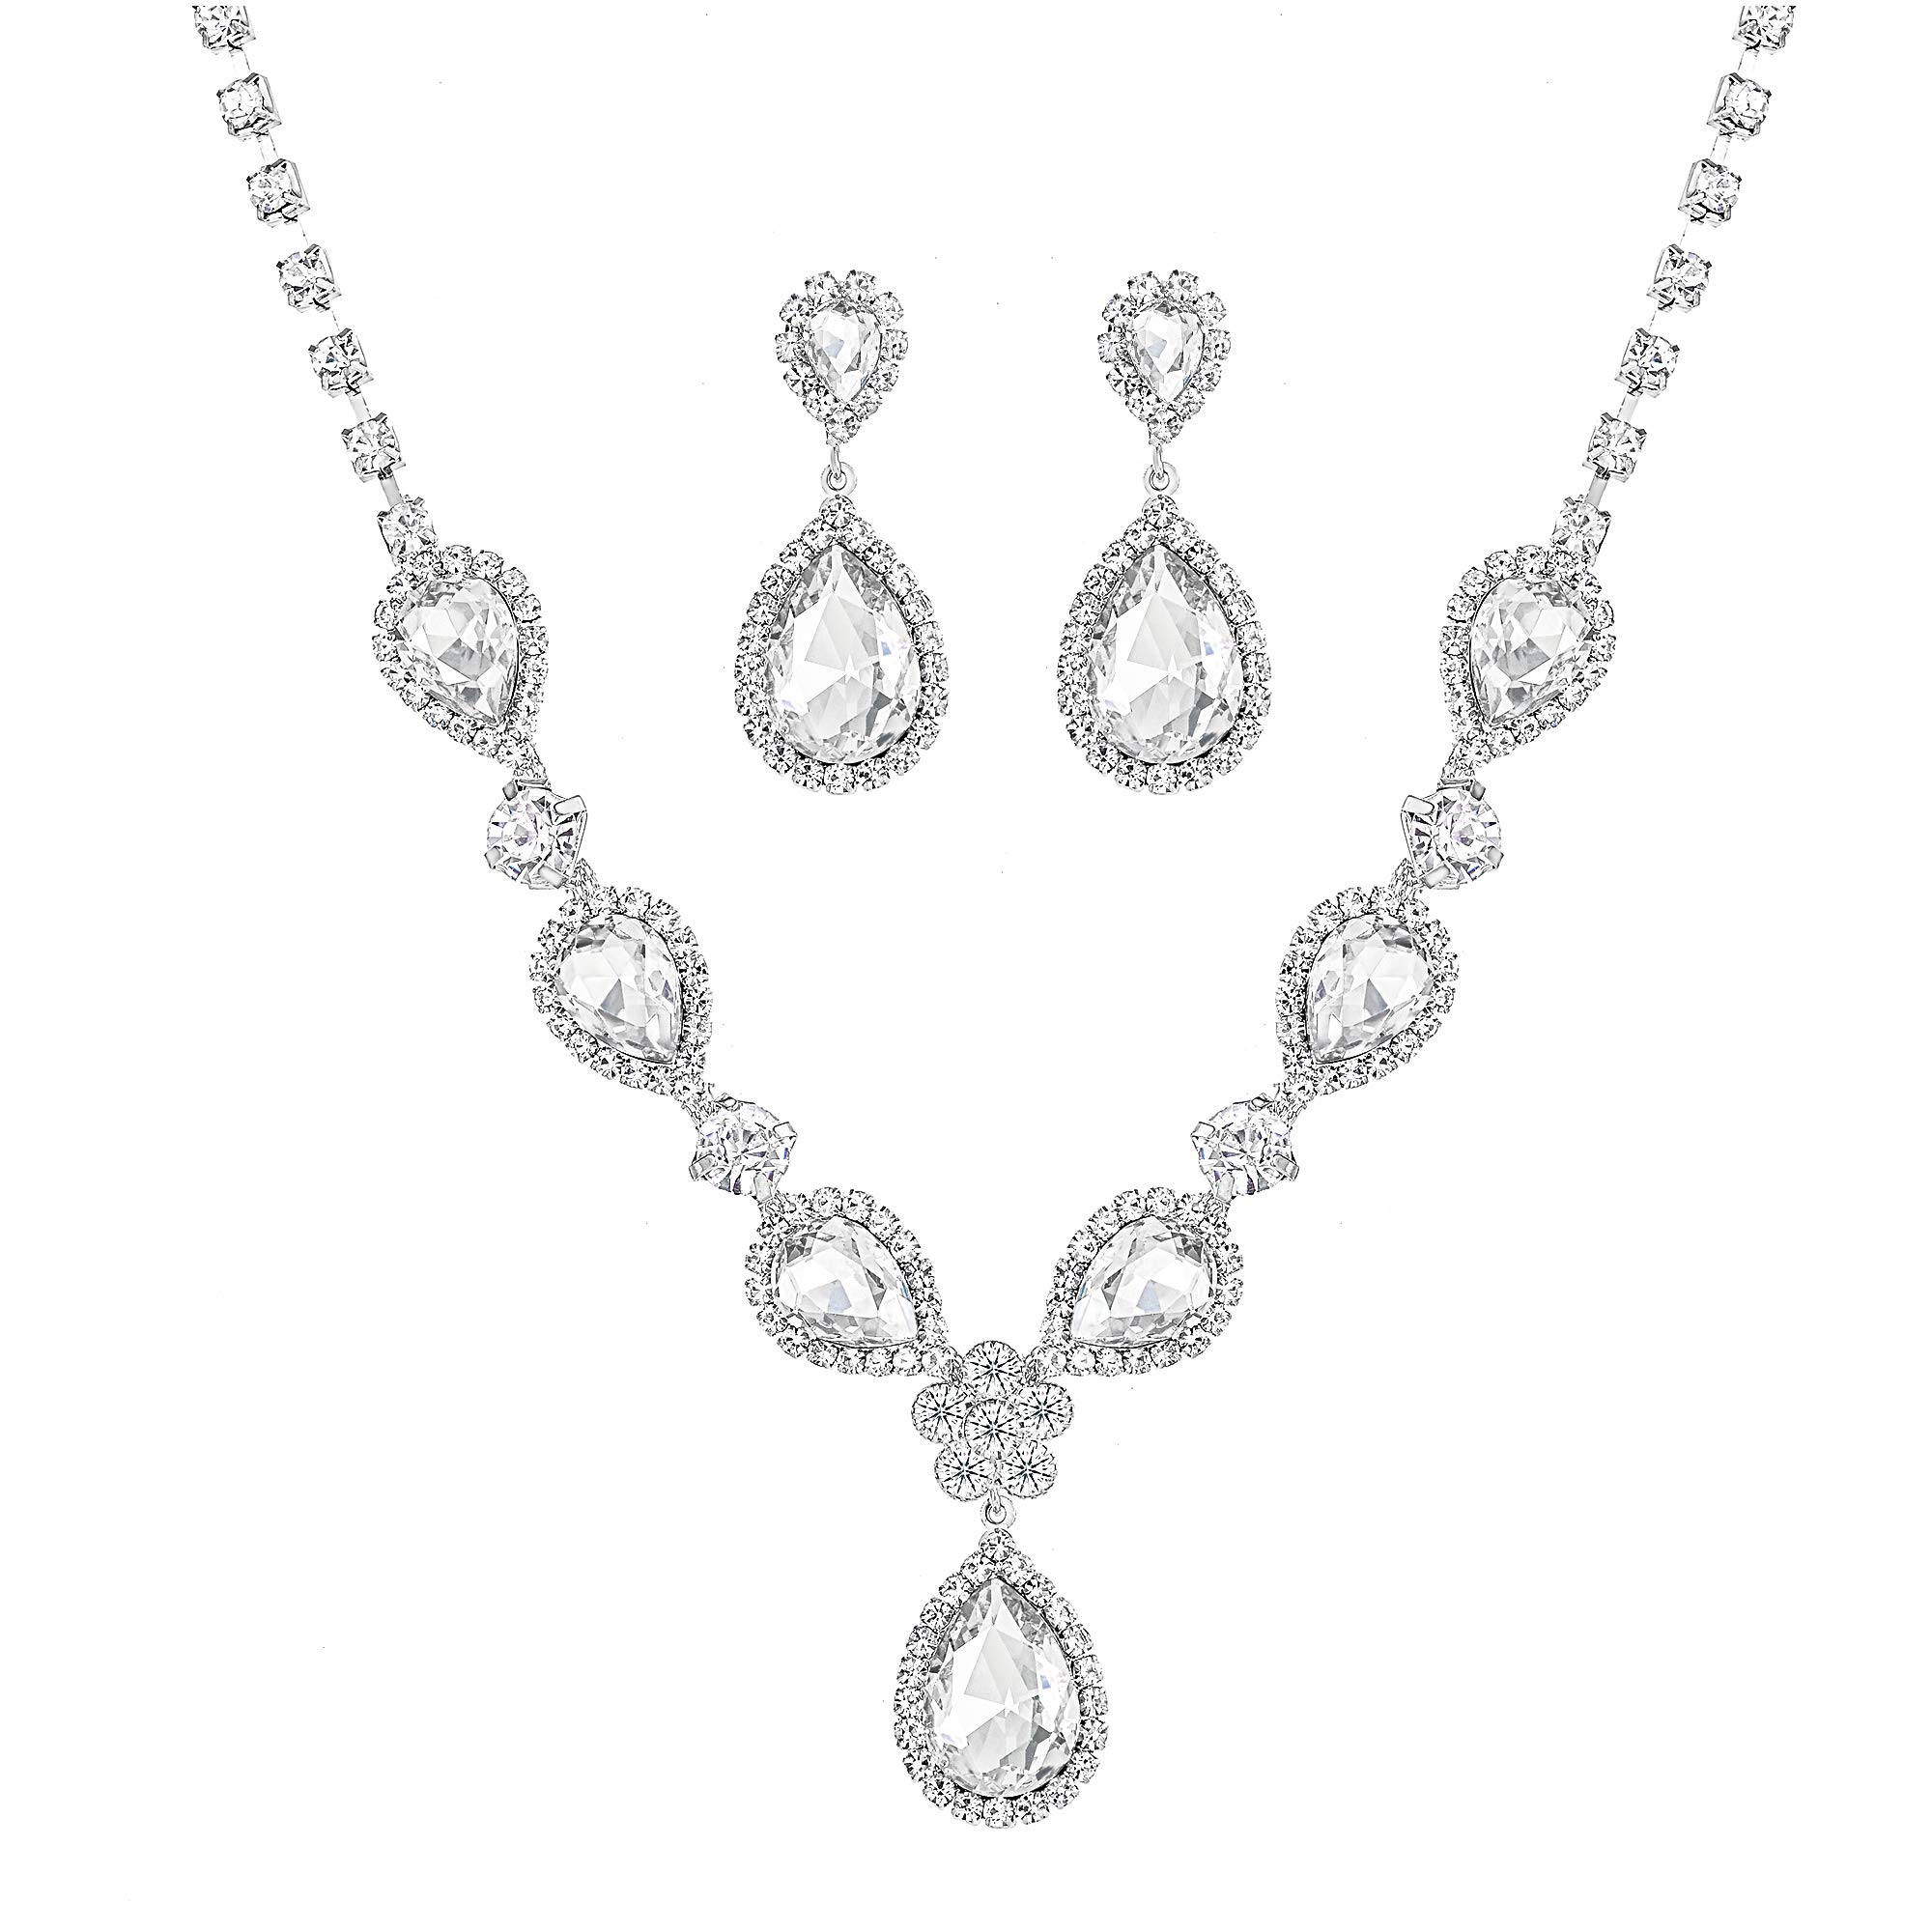 Miraculous Garden Bridal Gold Plated Teardrop Crystal Necklace Earrings Jewelry Set Gifts fit Wedding Dress